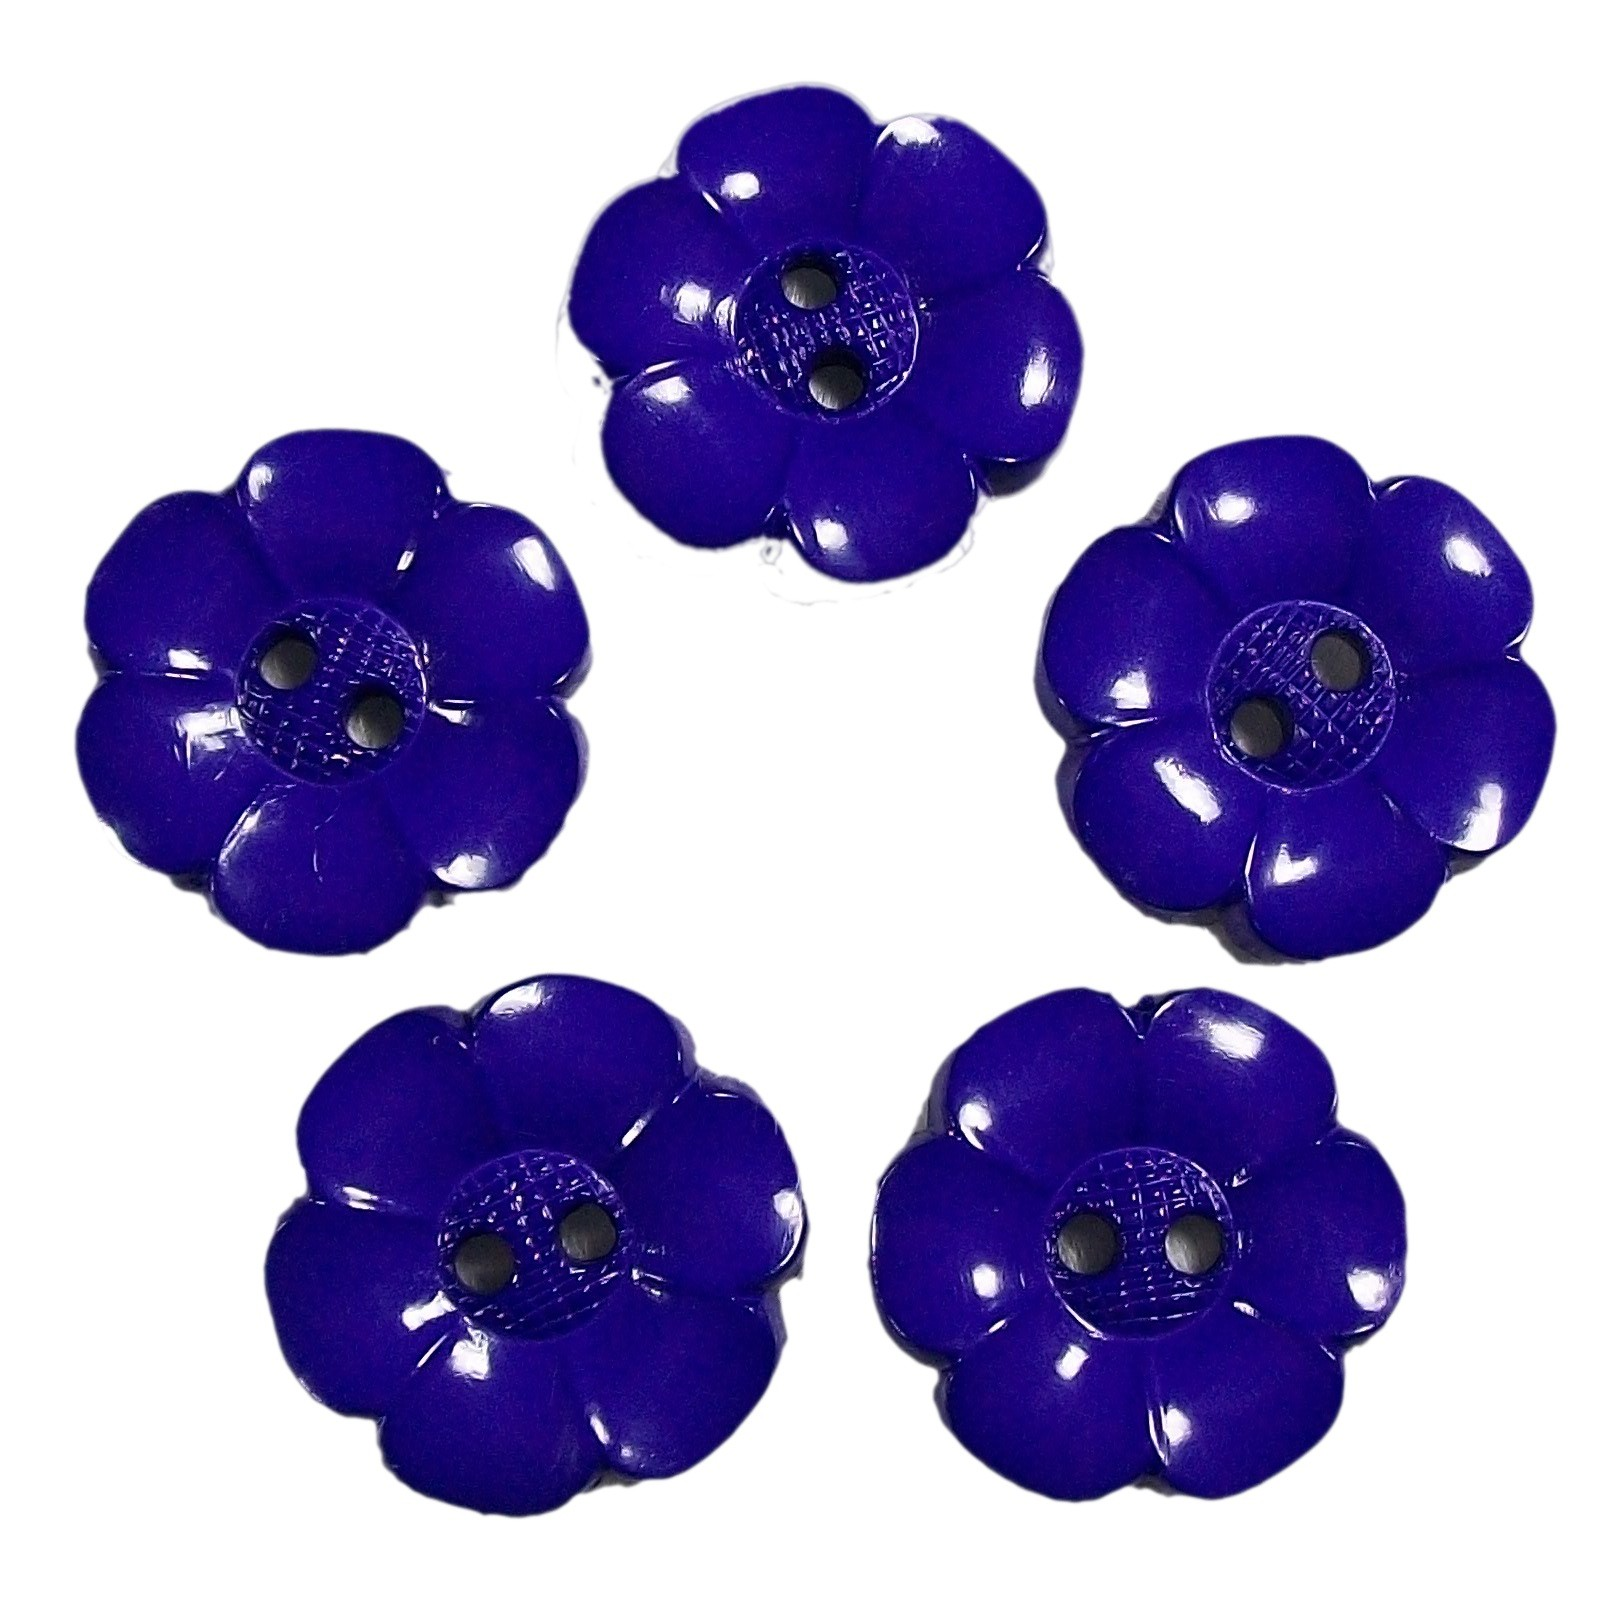 Large Daisy Flower Feature Button 22mm Purple Pack of 5